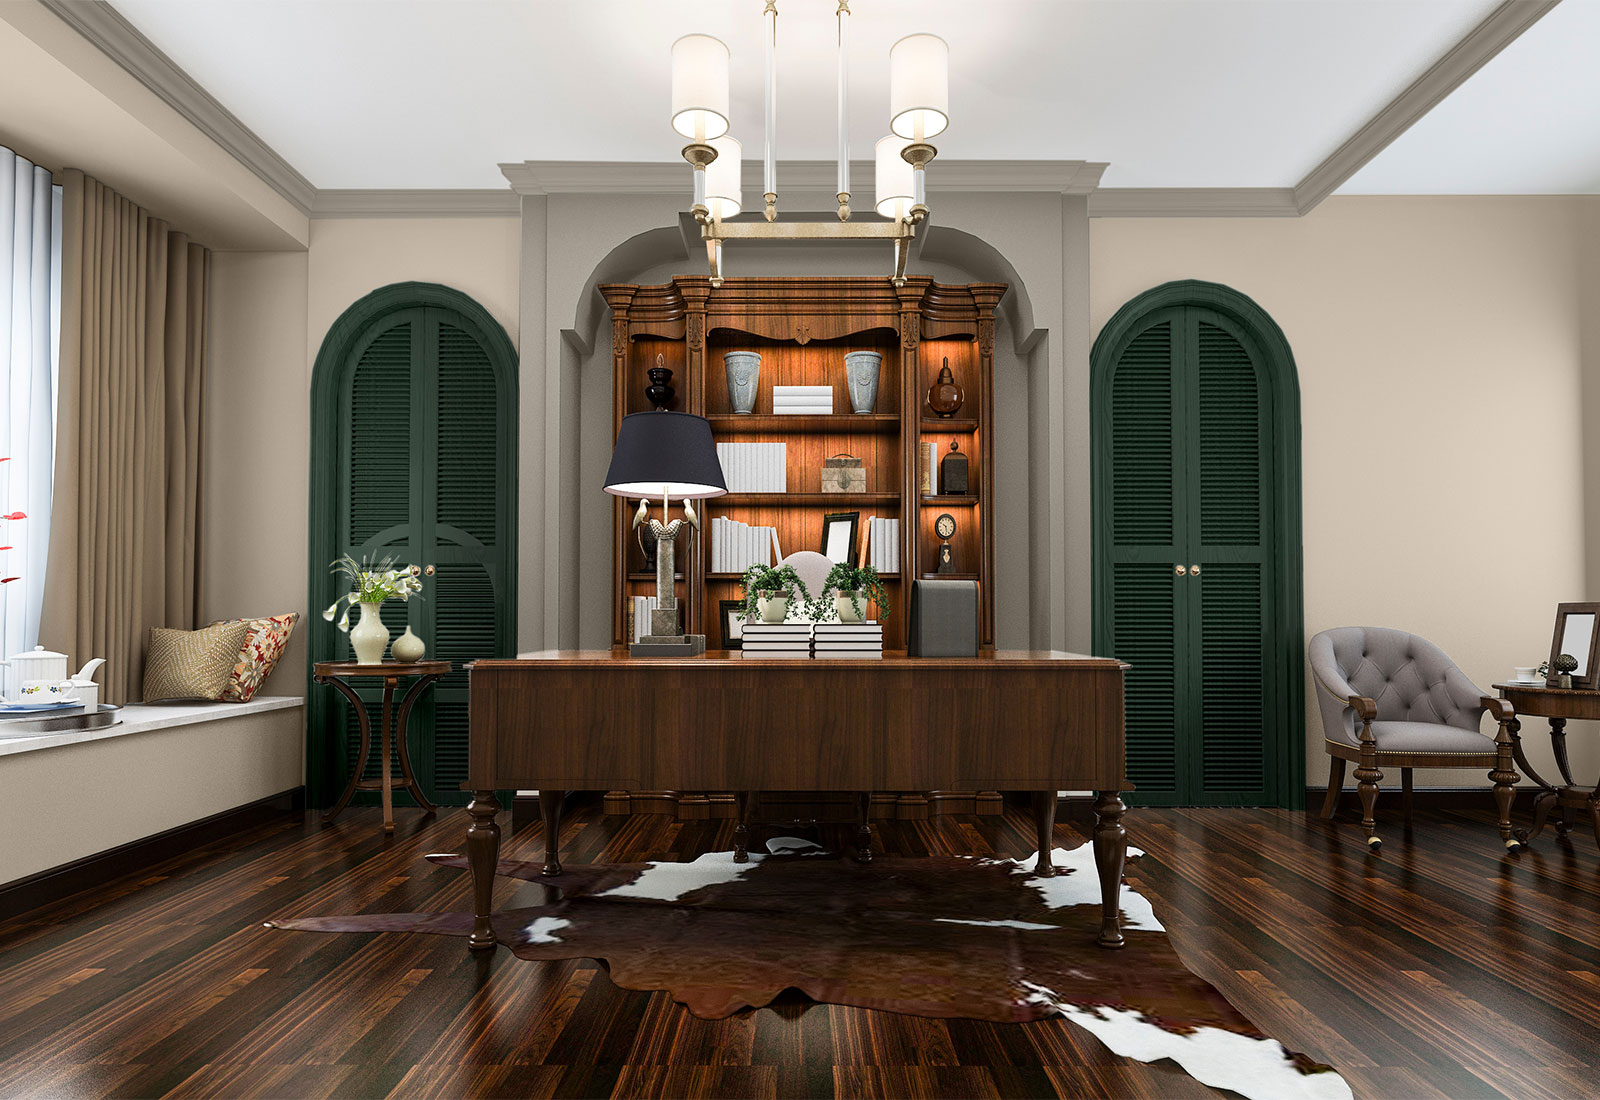 2019 paint color forecast from sherwin williams on paint colors by sherwin williams id=36295